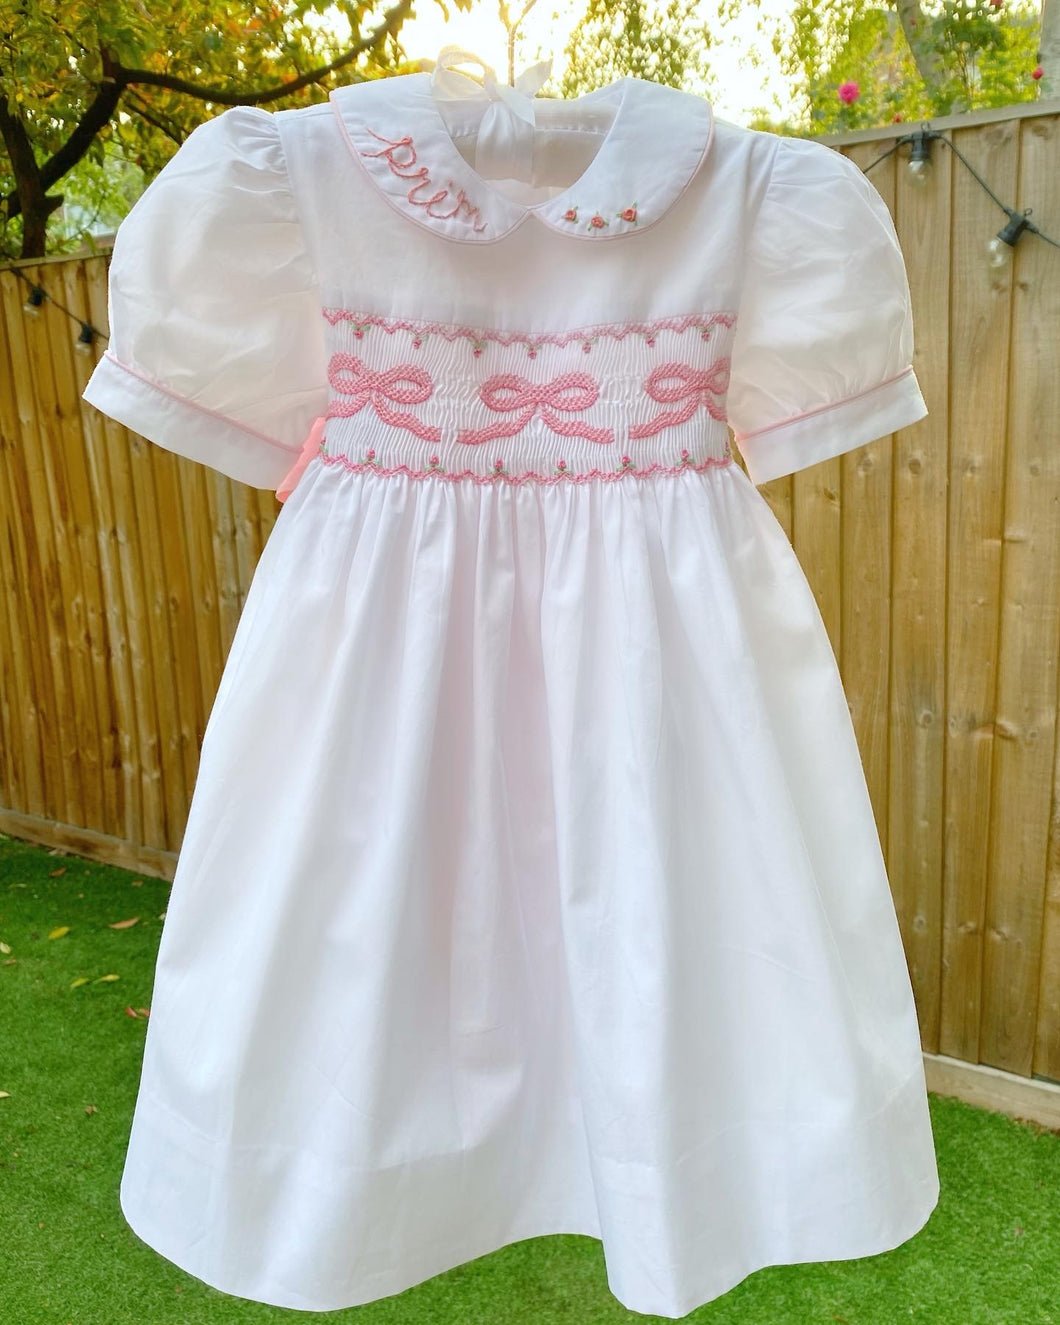 Bow smocked party dress